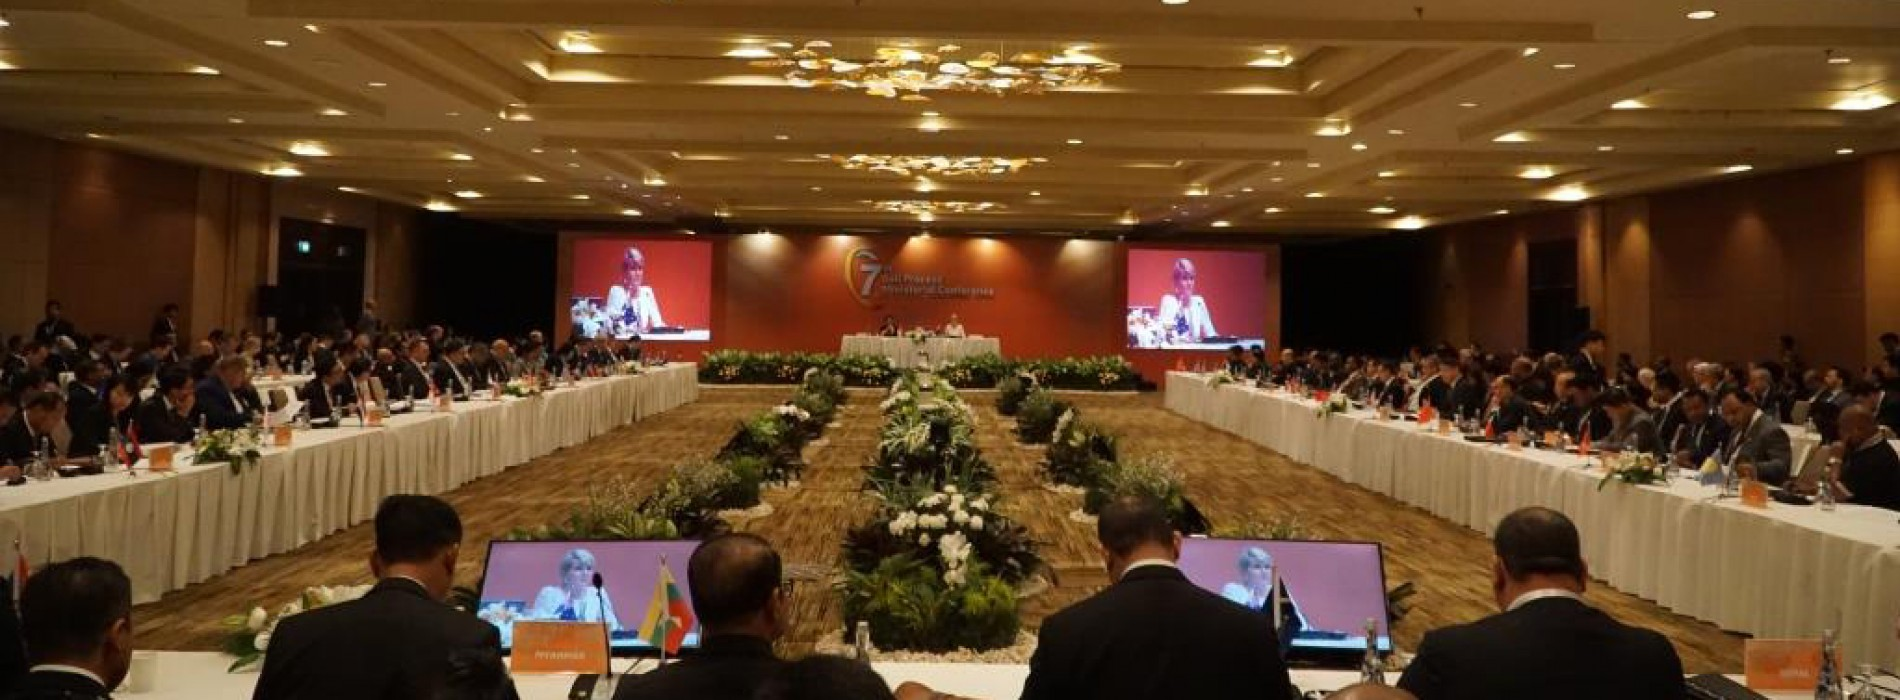 BICC hosted the 7th Bali Process Ministerial conference